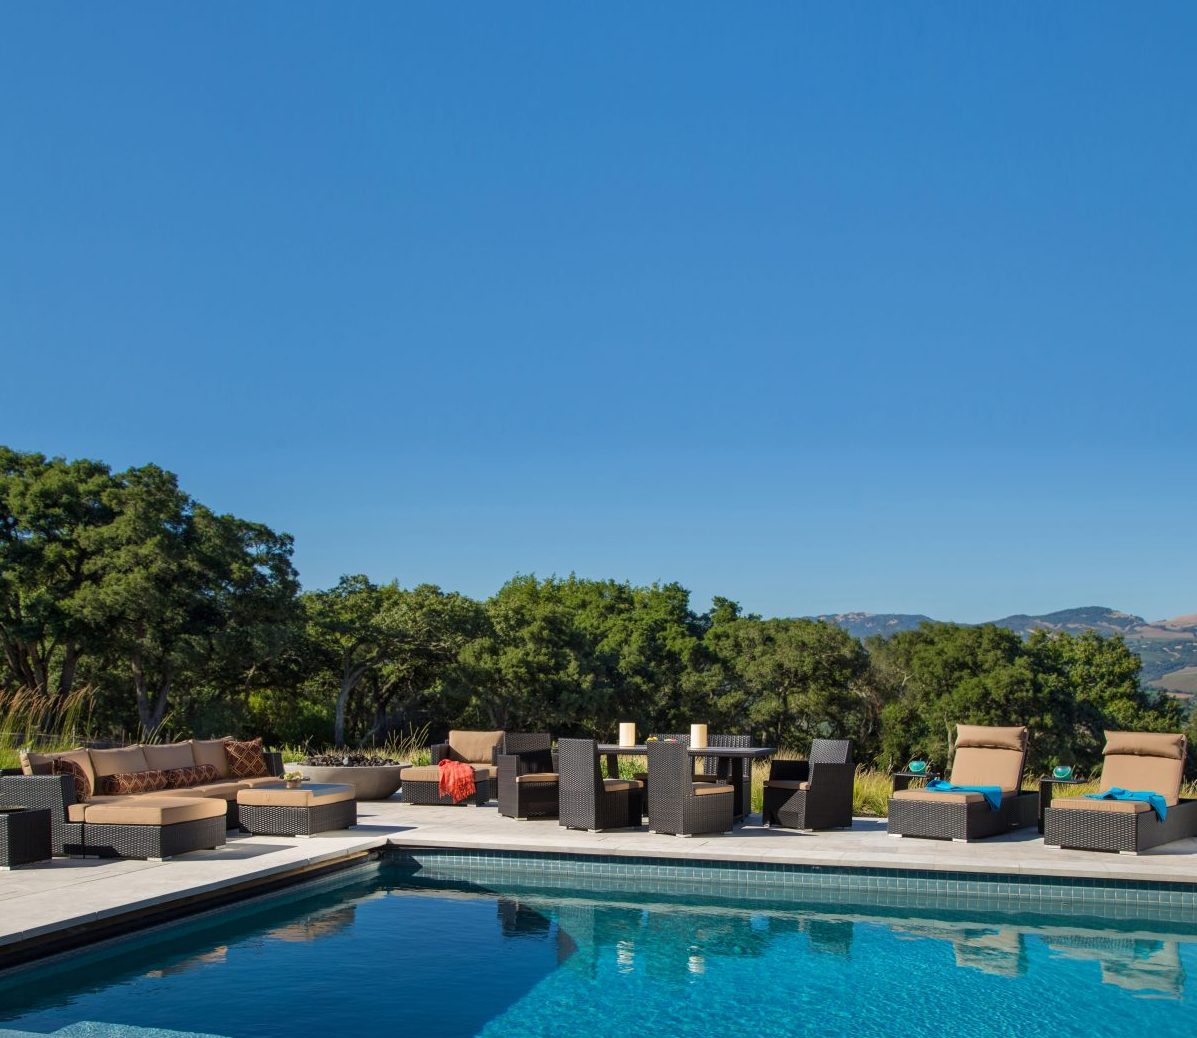 Poolside Furniture Ideas For Your